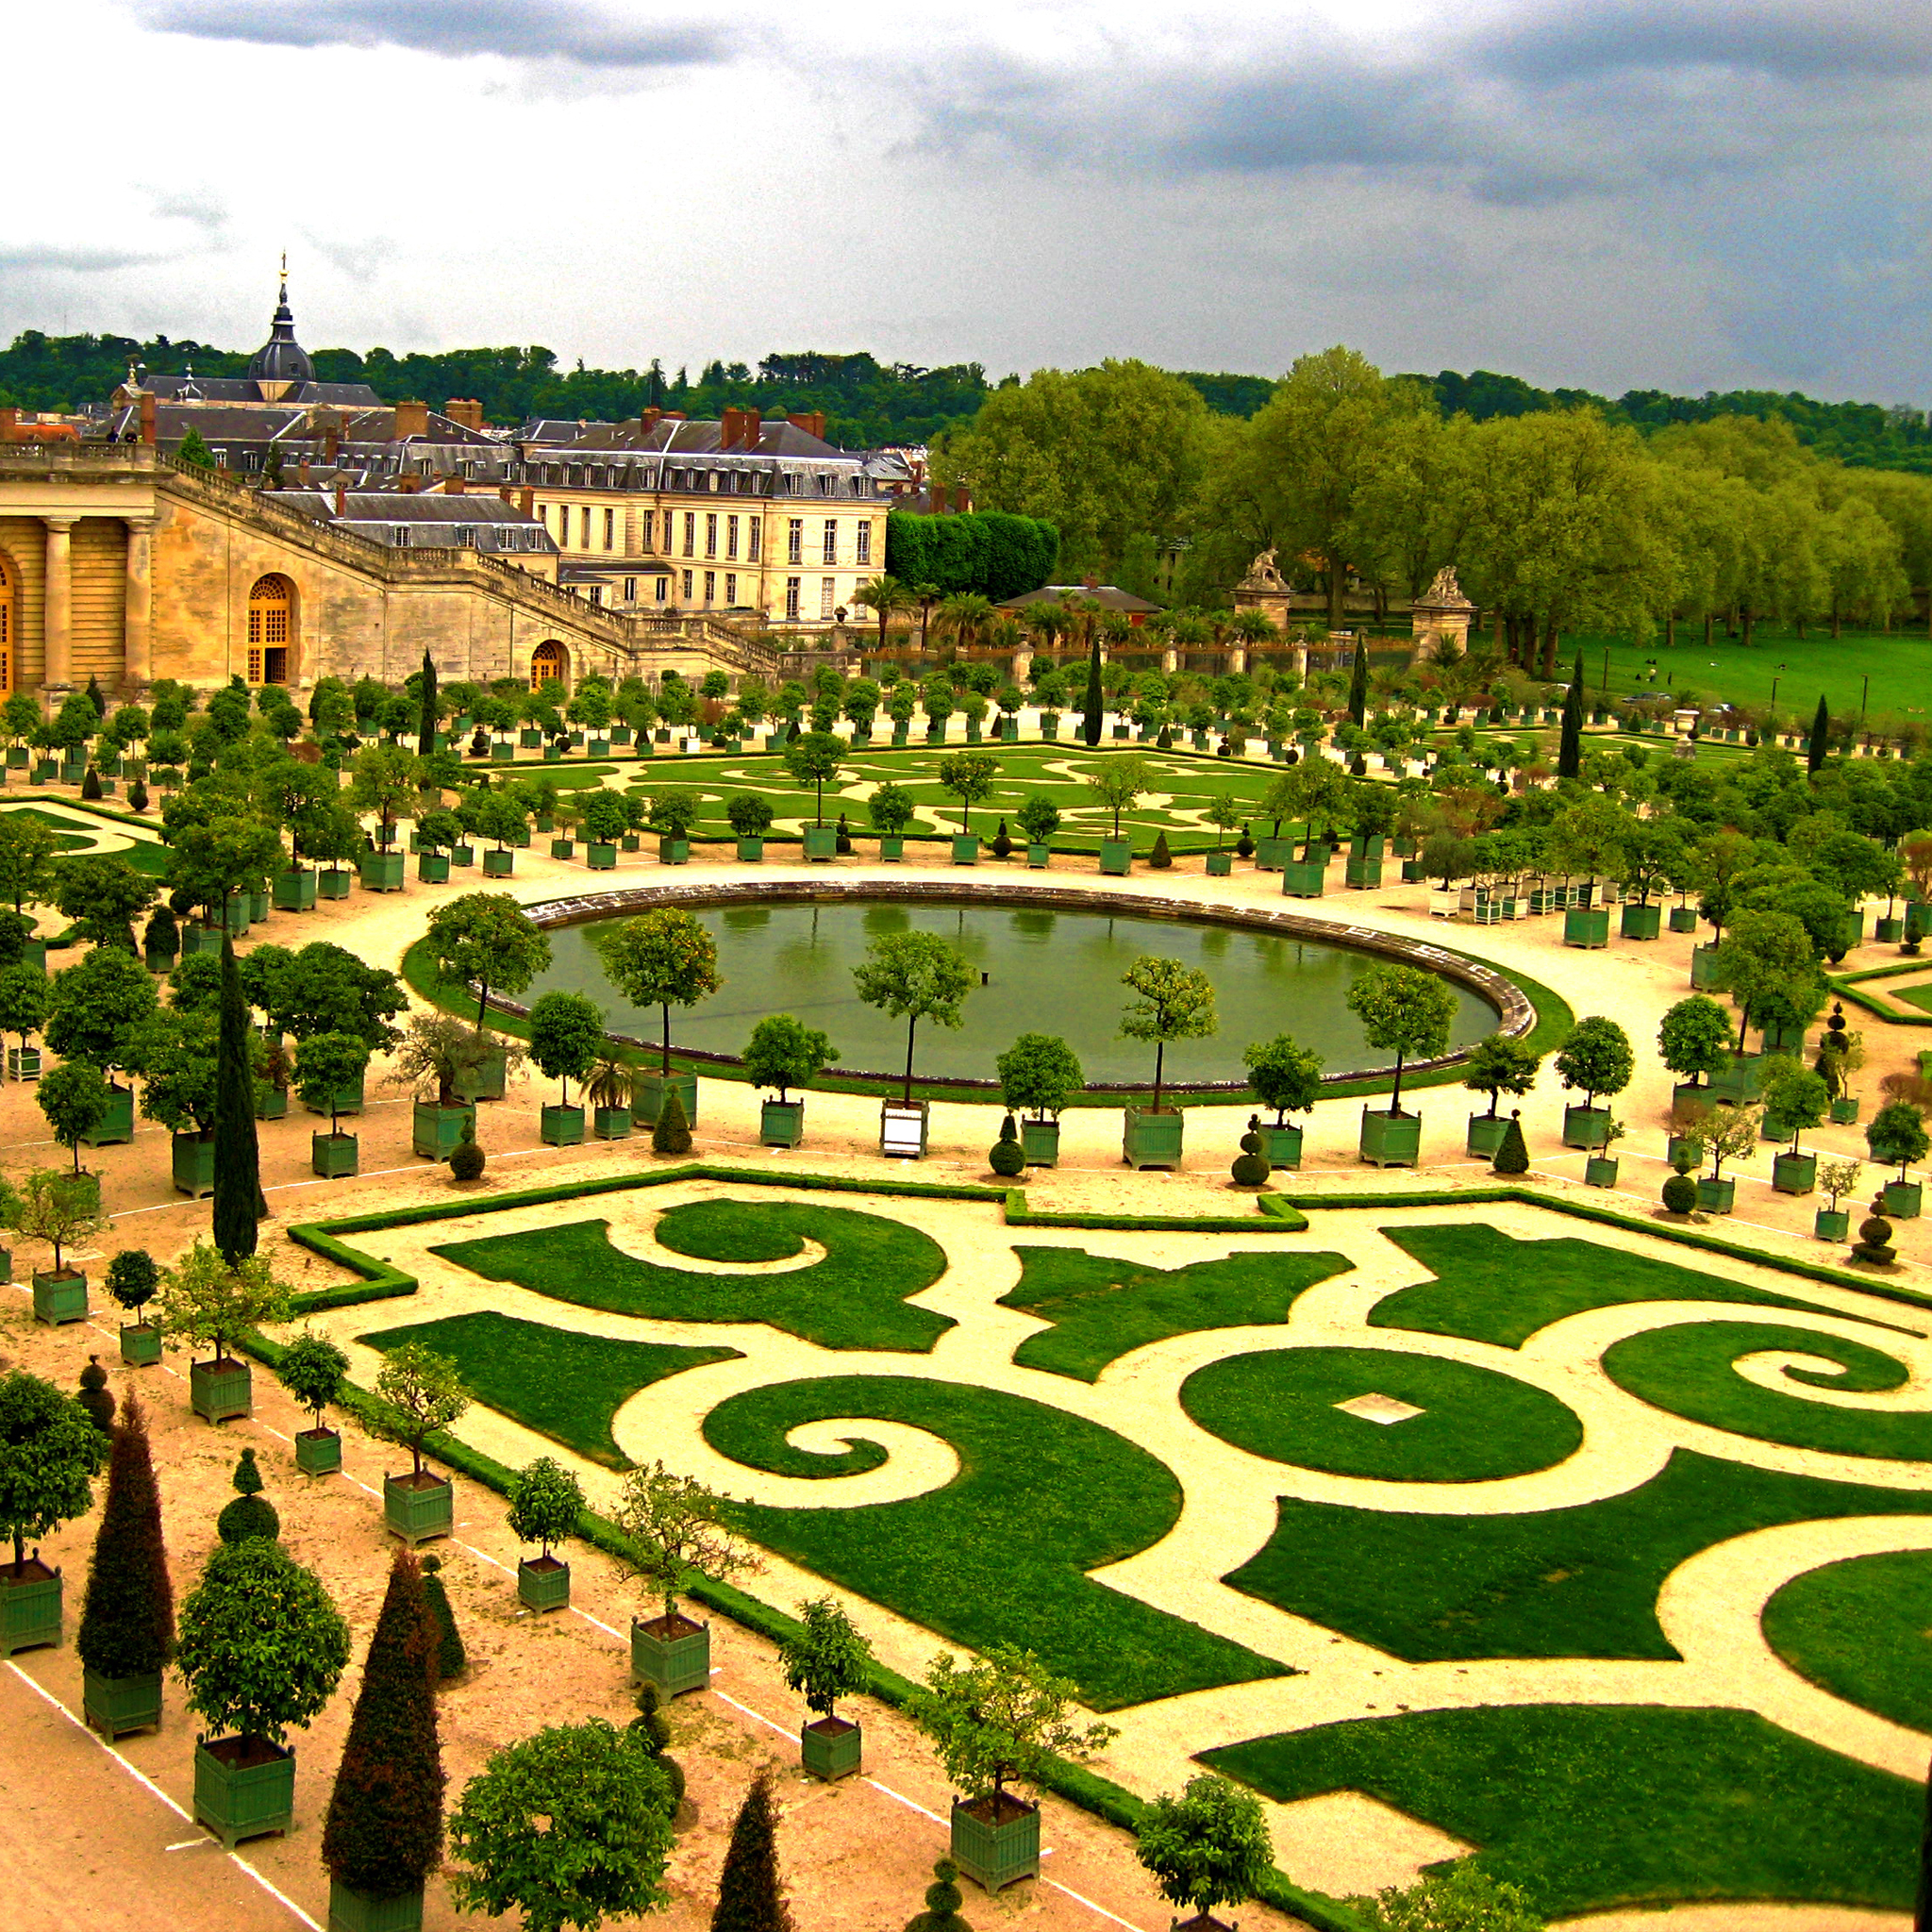 jardins de versailles ipad retina wallpaper for iphone x